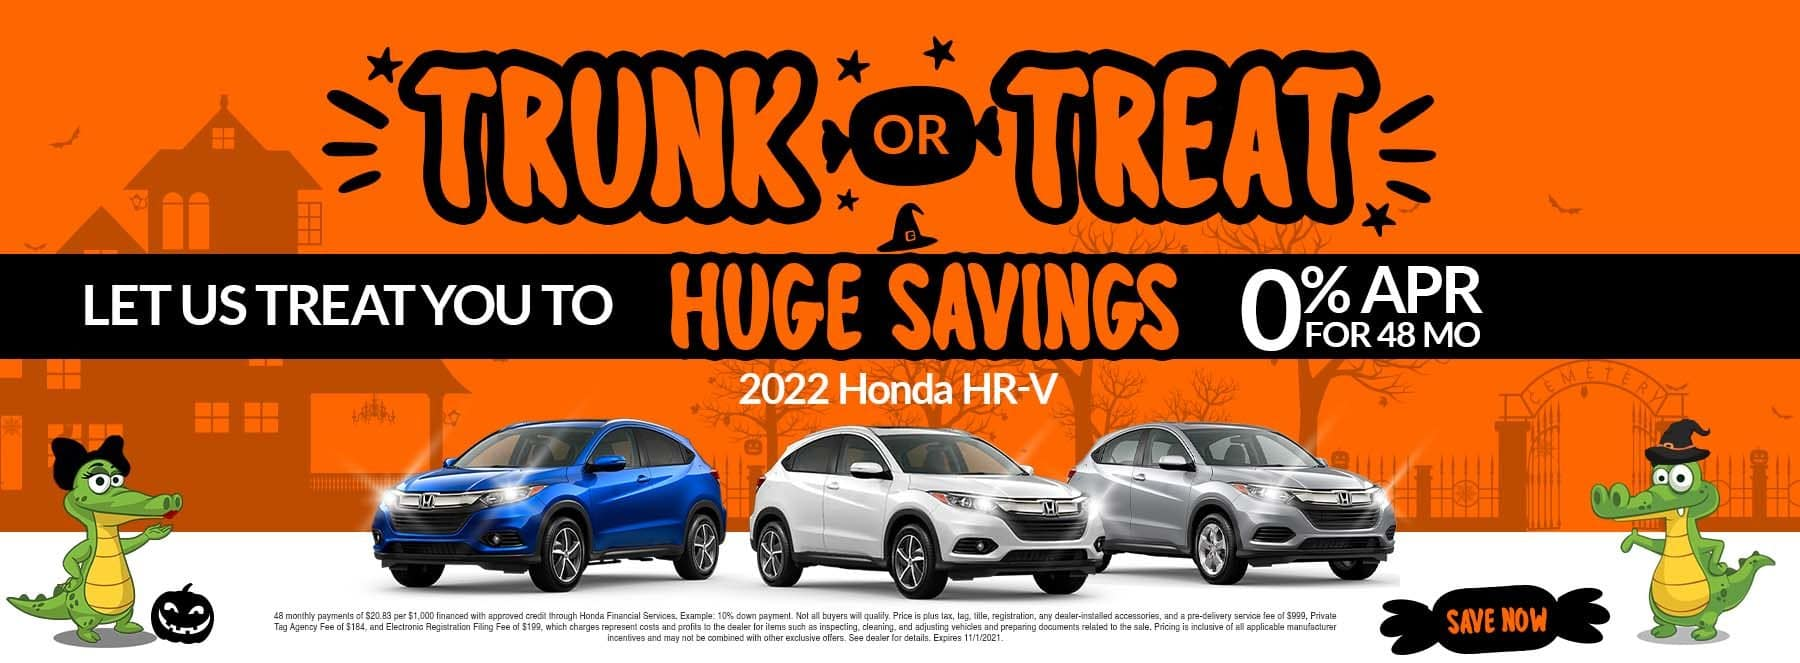 Trunk Or Treat | Let Us Treat You To Huge Savings | 2022 Honda HR-V | 0% APR For 48 Months